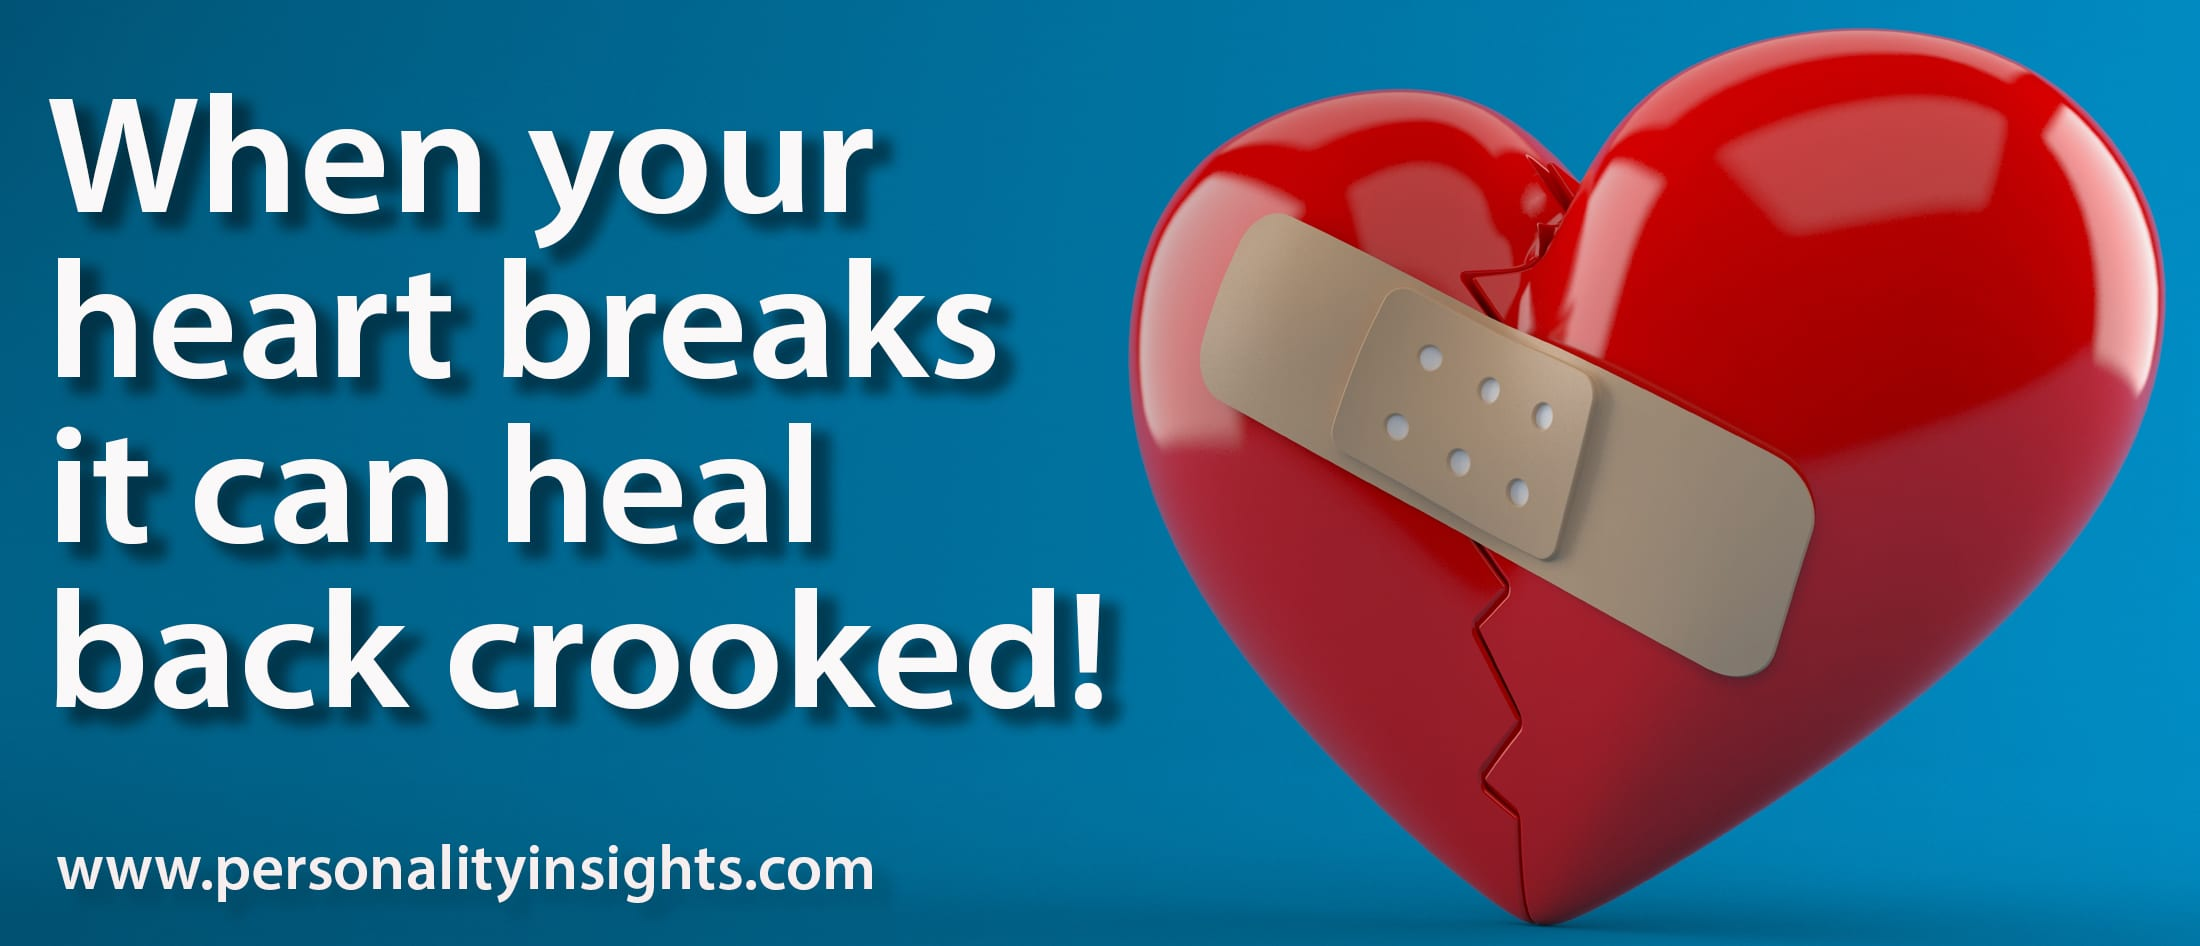 Tip: When your heart breaks it can heal back crooked!